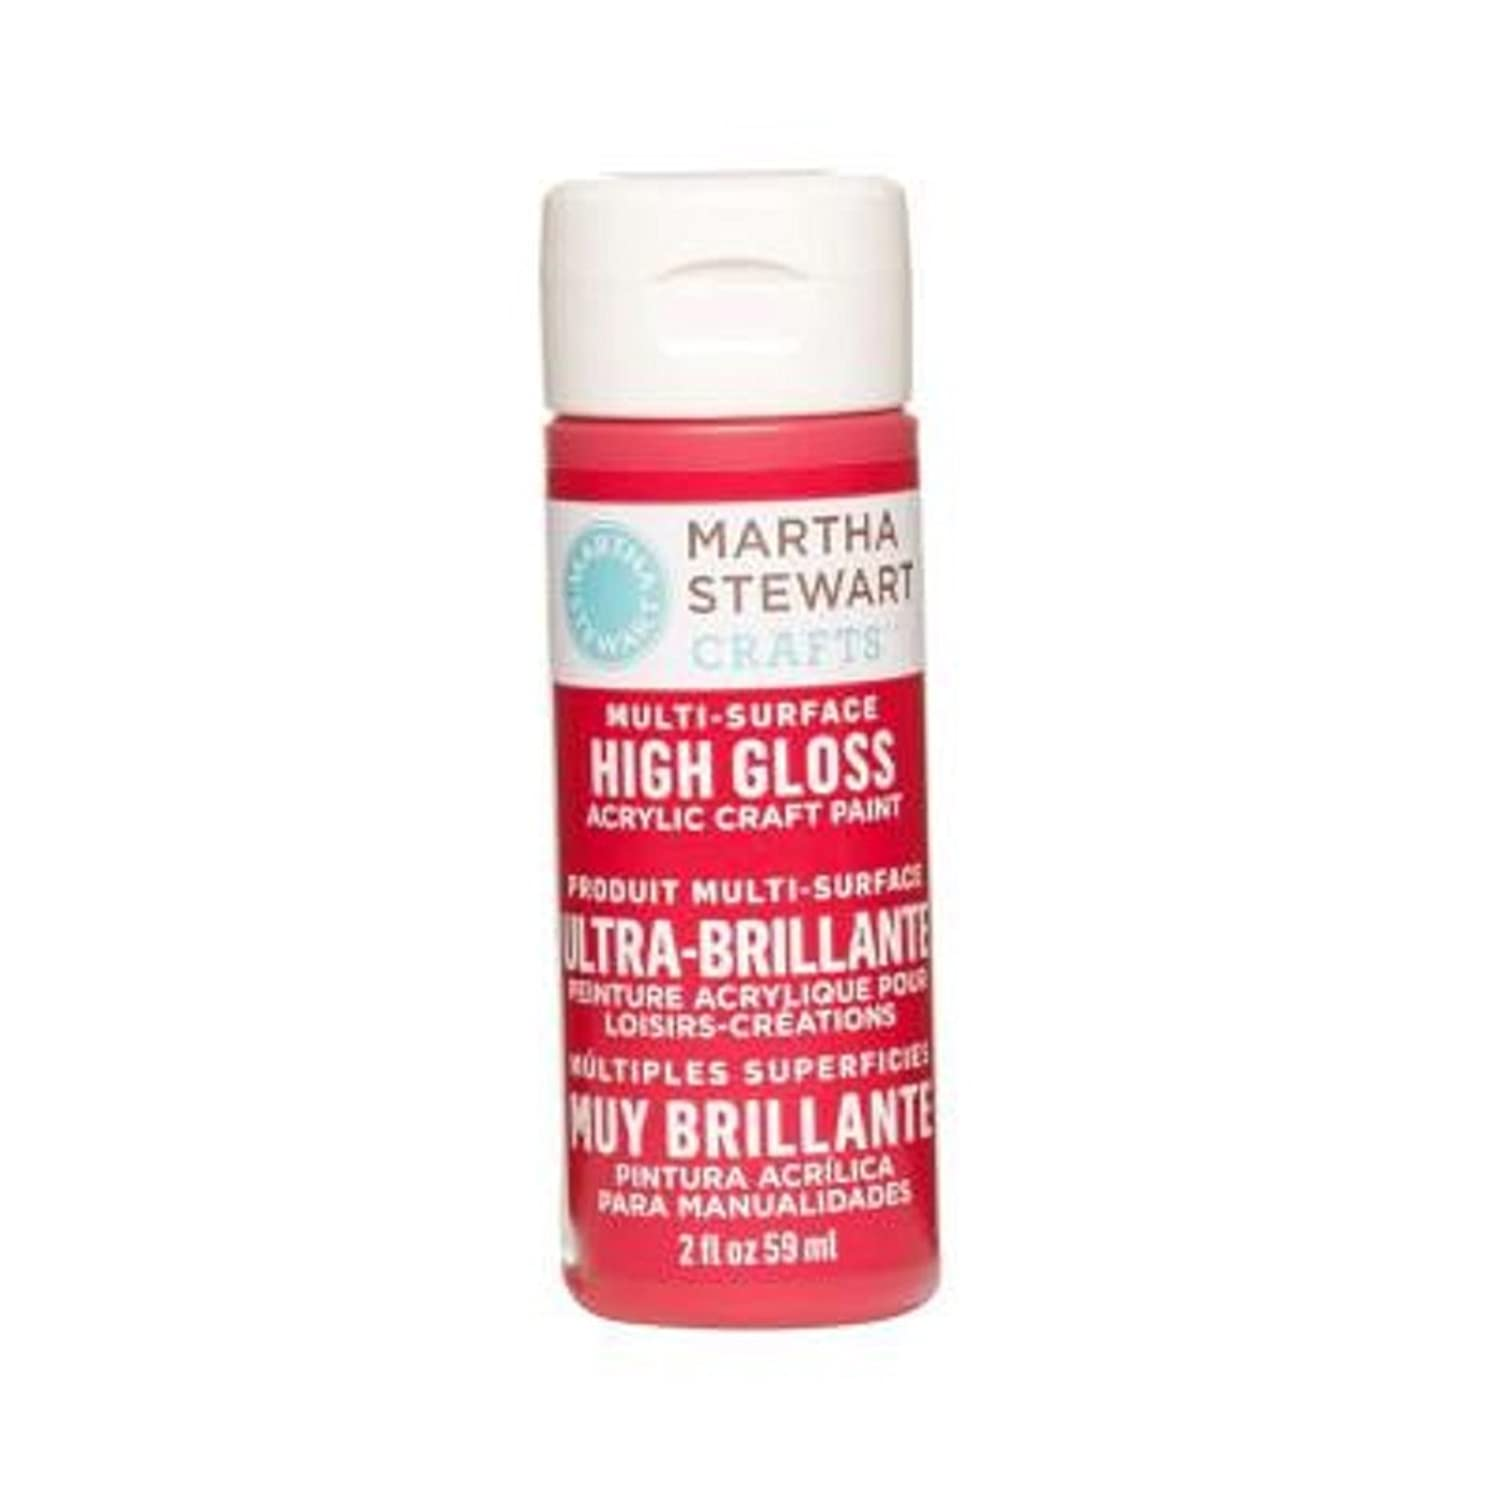 Martha Stewart Crafts Multi-Surface High Gloss Acrylic Craft Paint in Assorted Colors (2-Ounce), 32096 Habanero